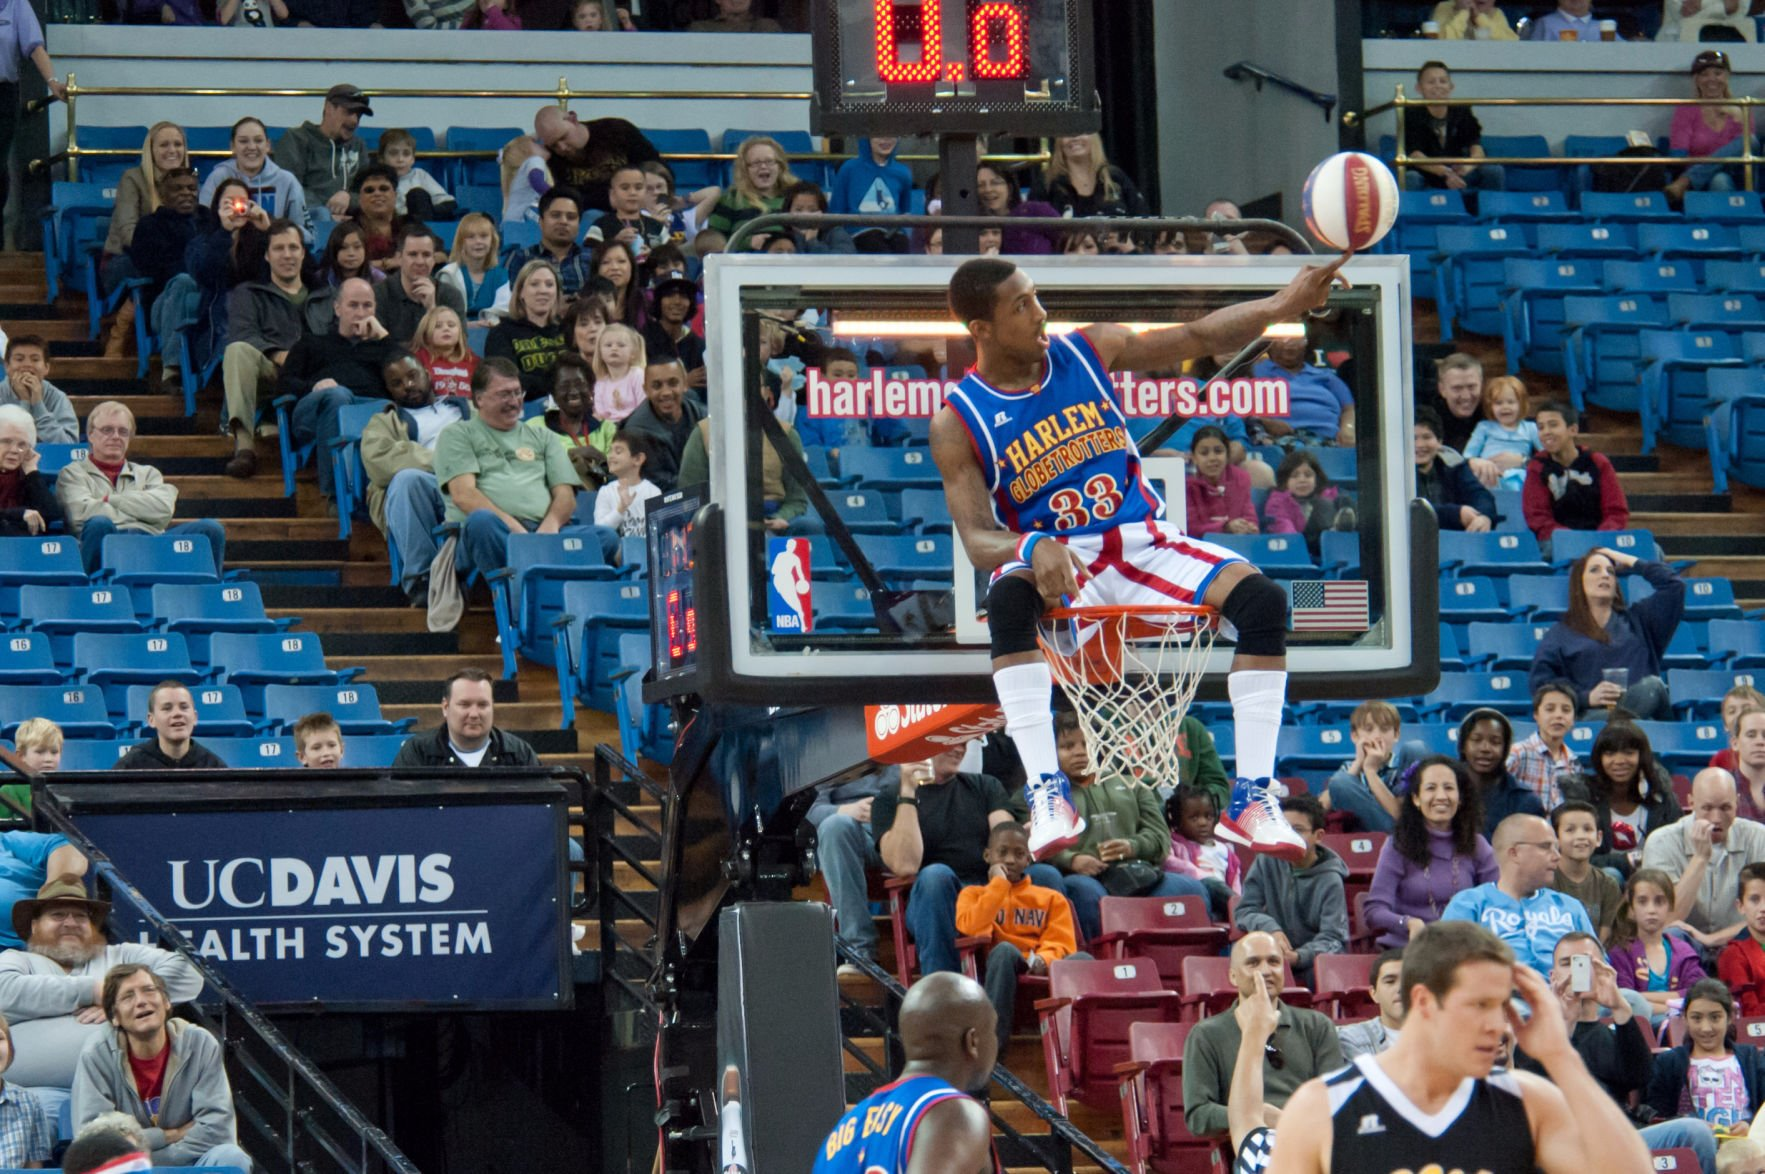 Harlem Globetrotter sinks shot from 200 feet in the air from helicopter